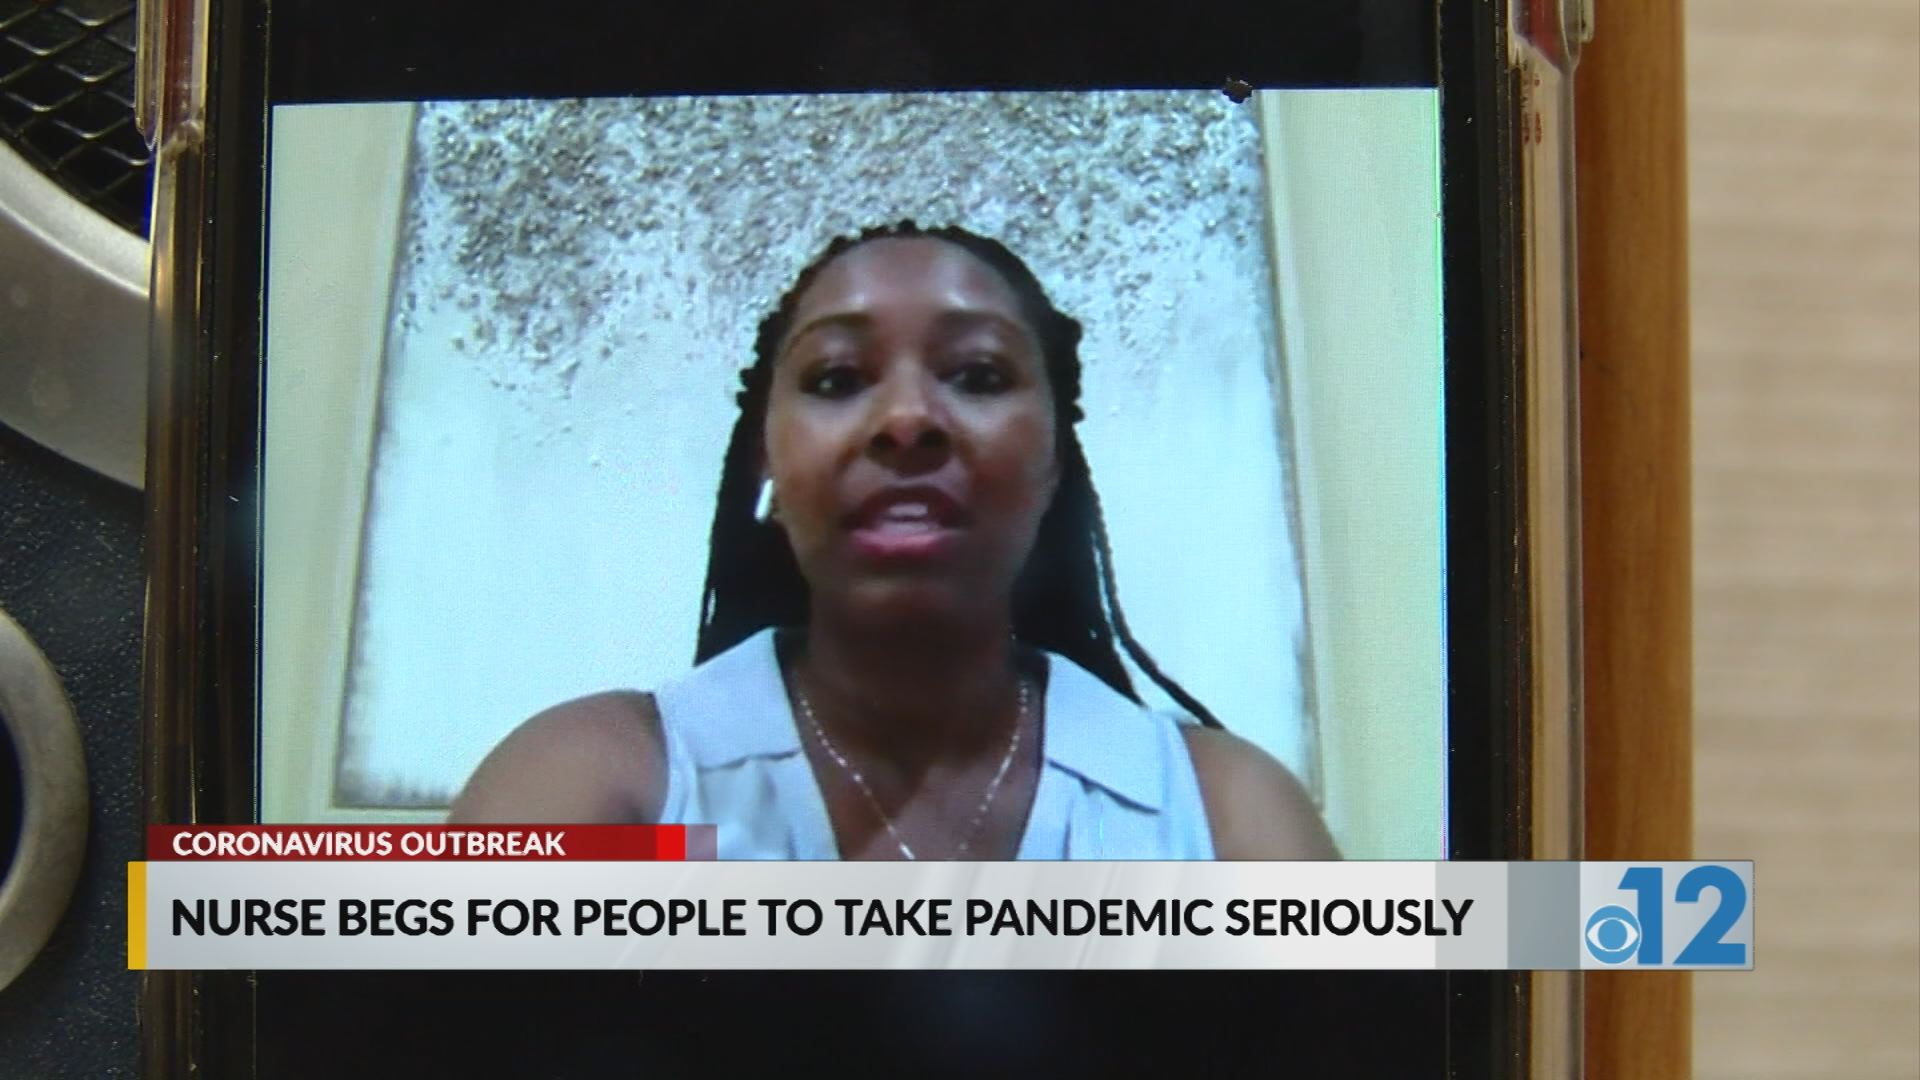 Nurse begs for people to take pandemic seriously